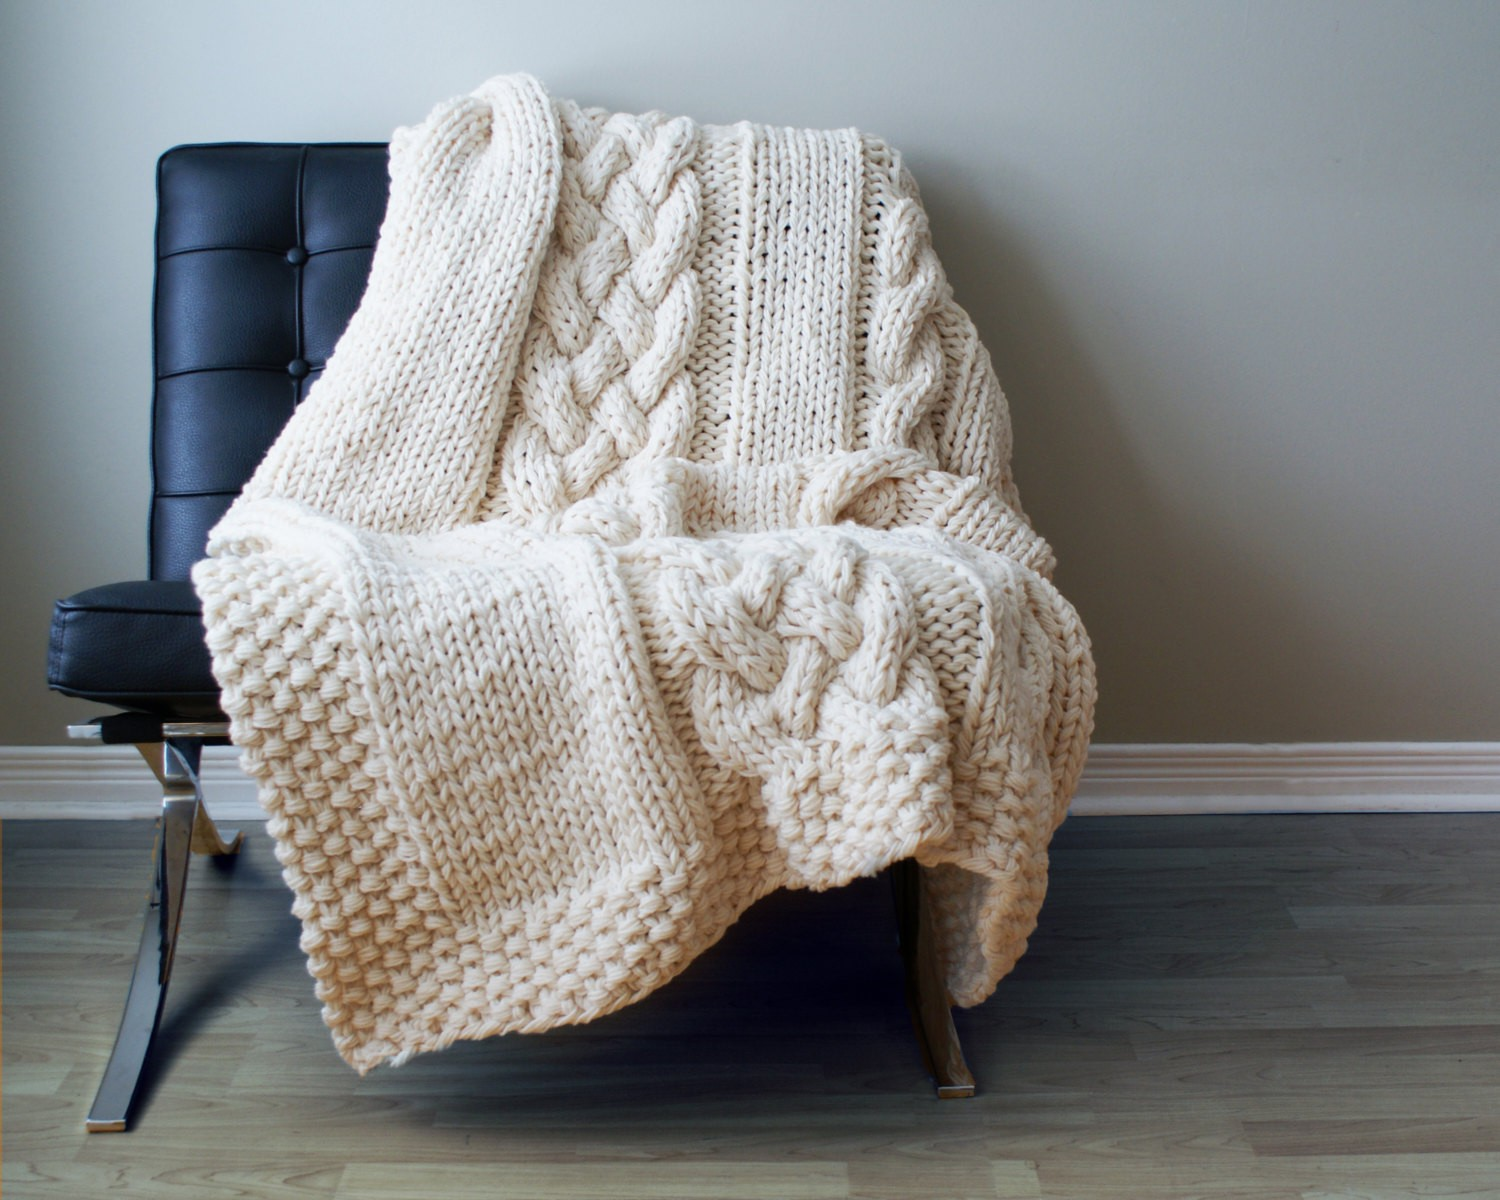 Knitting Patterns For Throws : Chunky Knit Blanket Pattern A Knitting Blog